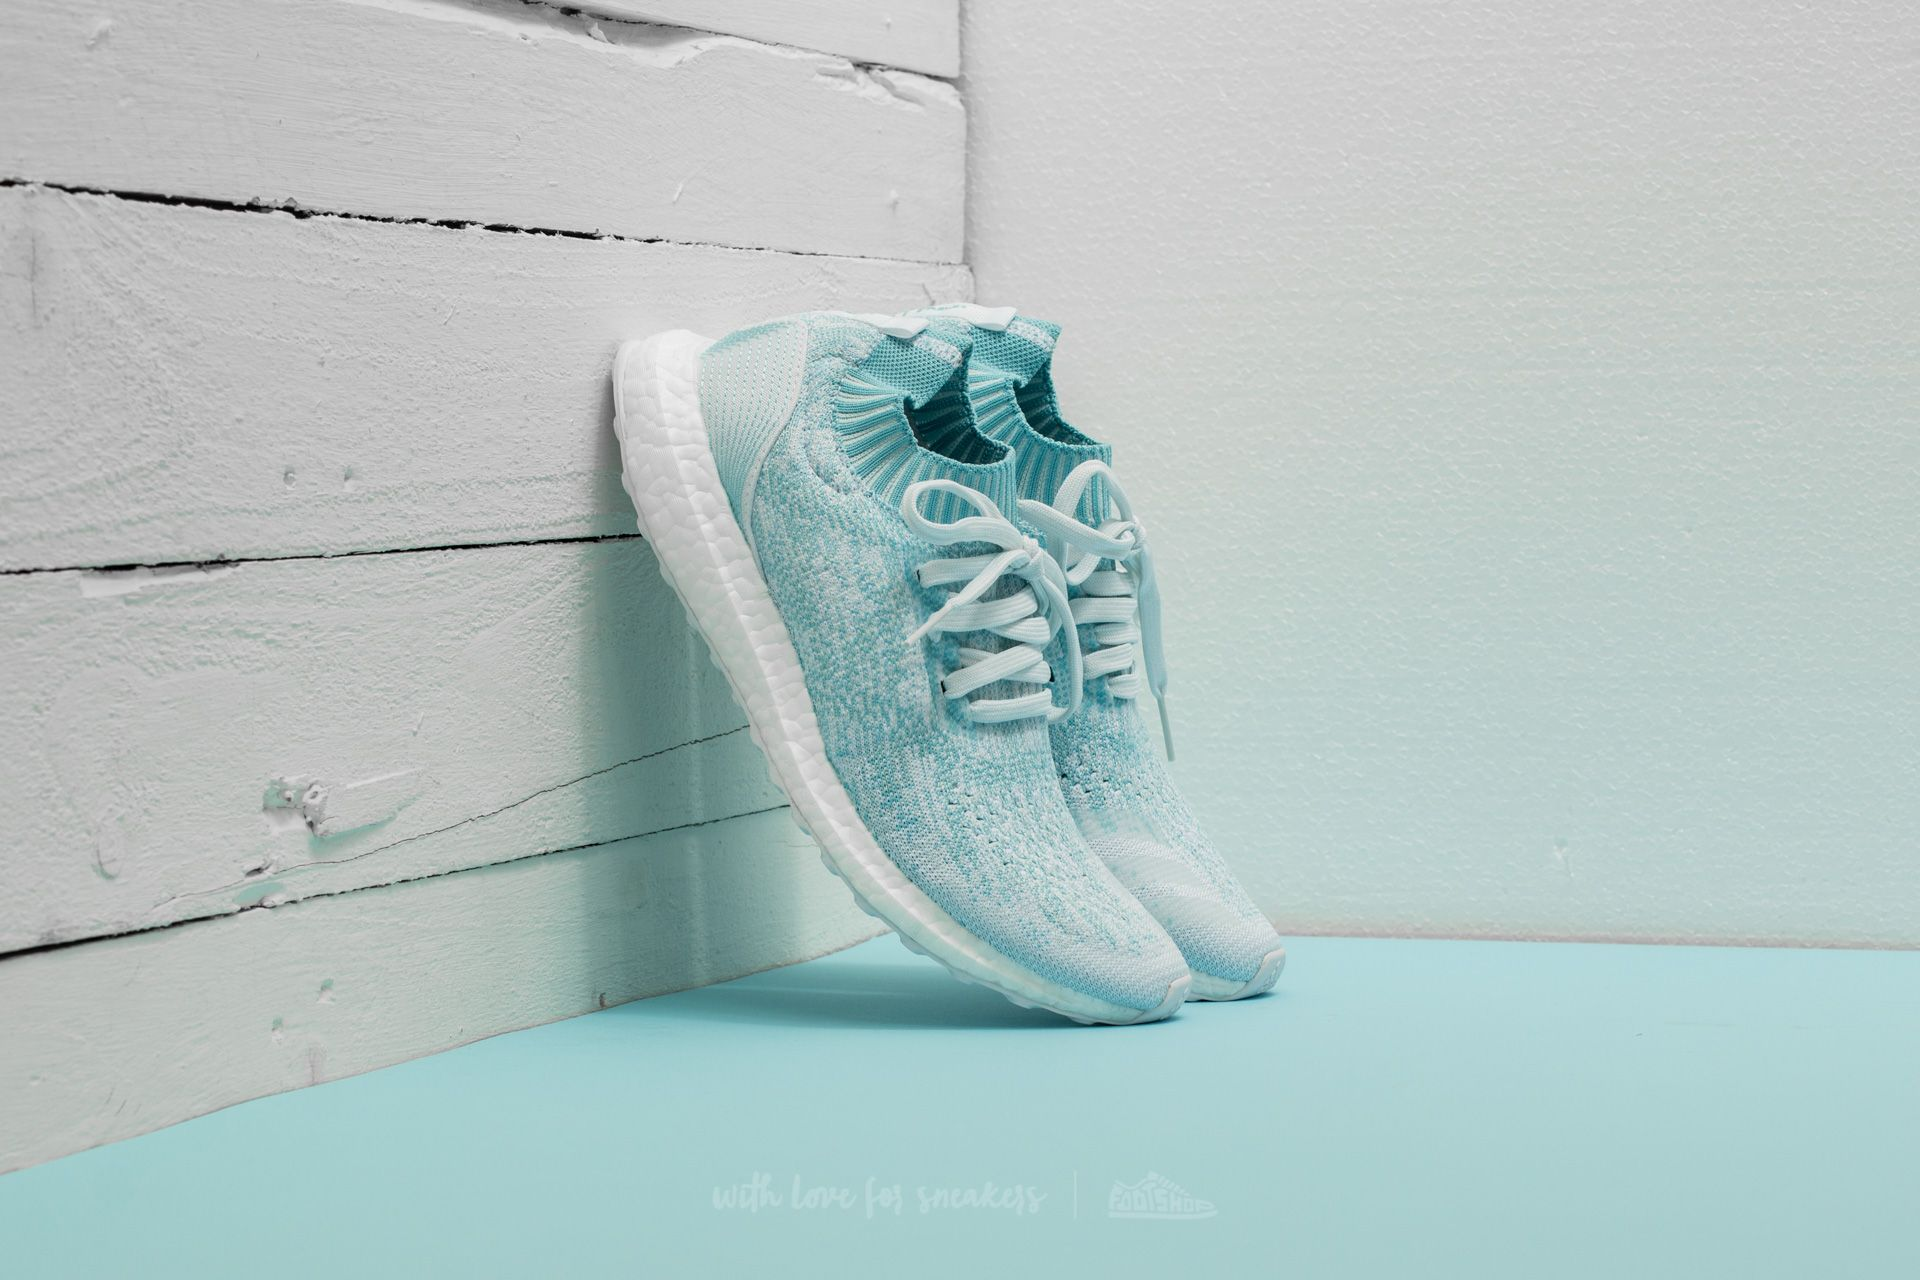 ac05d43180512 adidas x Parley UltraBoost Uncaged Icey Blue  Ftw White  Icey Blue ...